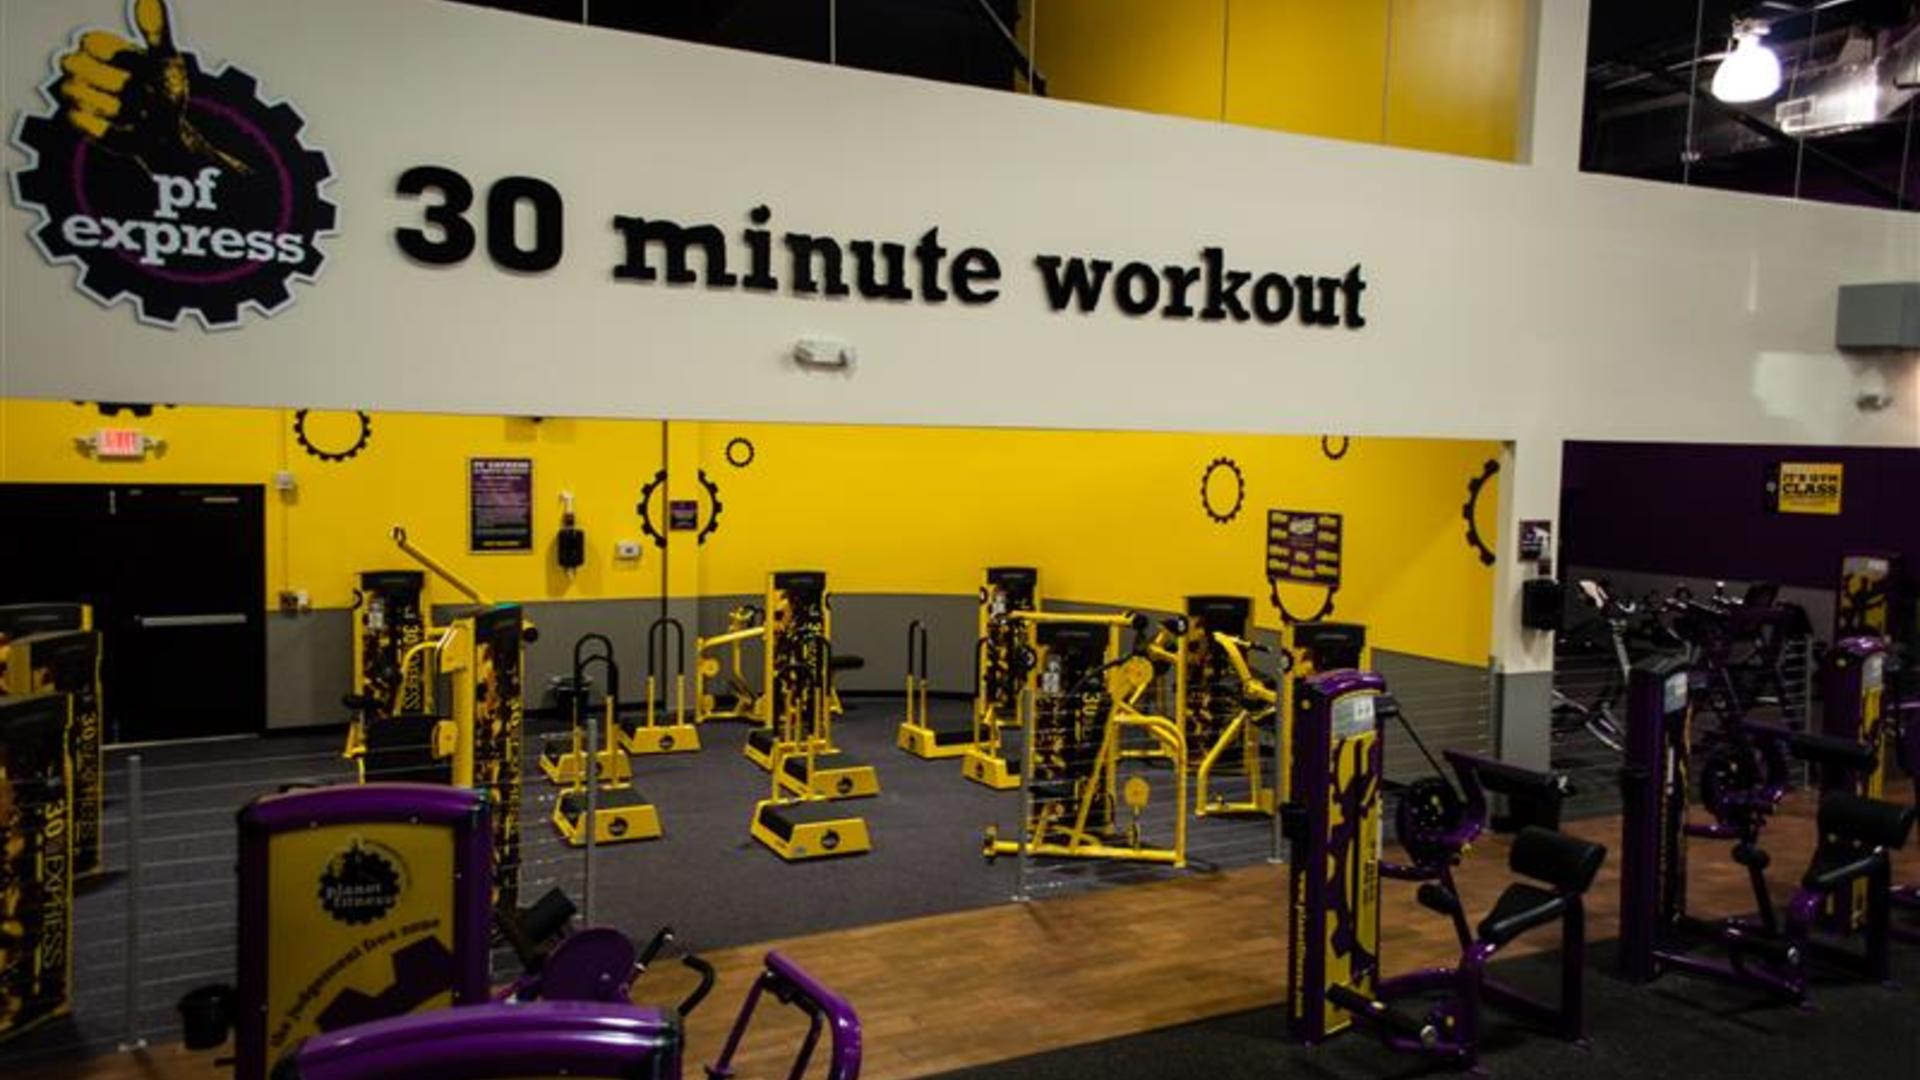 Planet Fitness 222 Photos 110 Reviews Gyms 1175 W March Ln Stockton Ca Phone Number Yelp